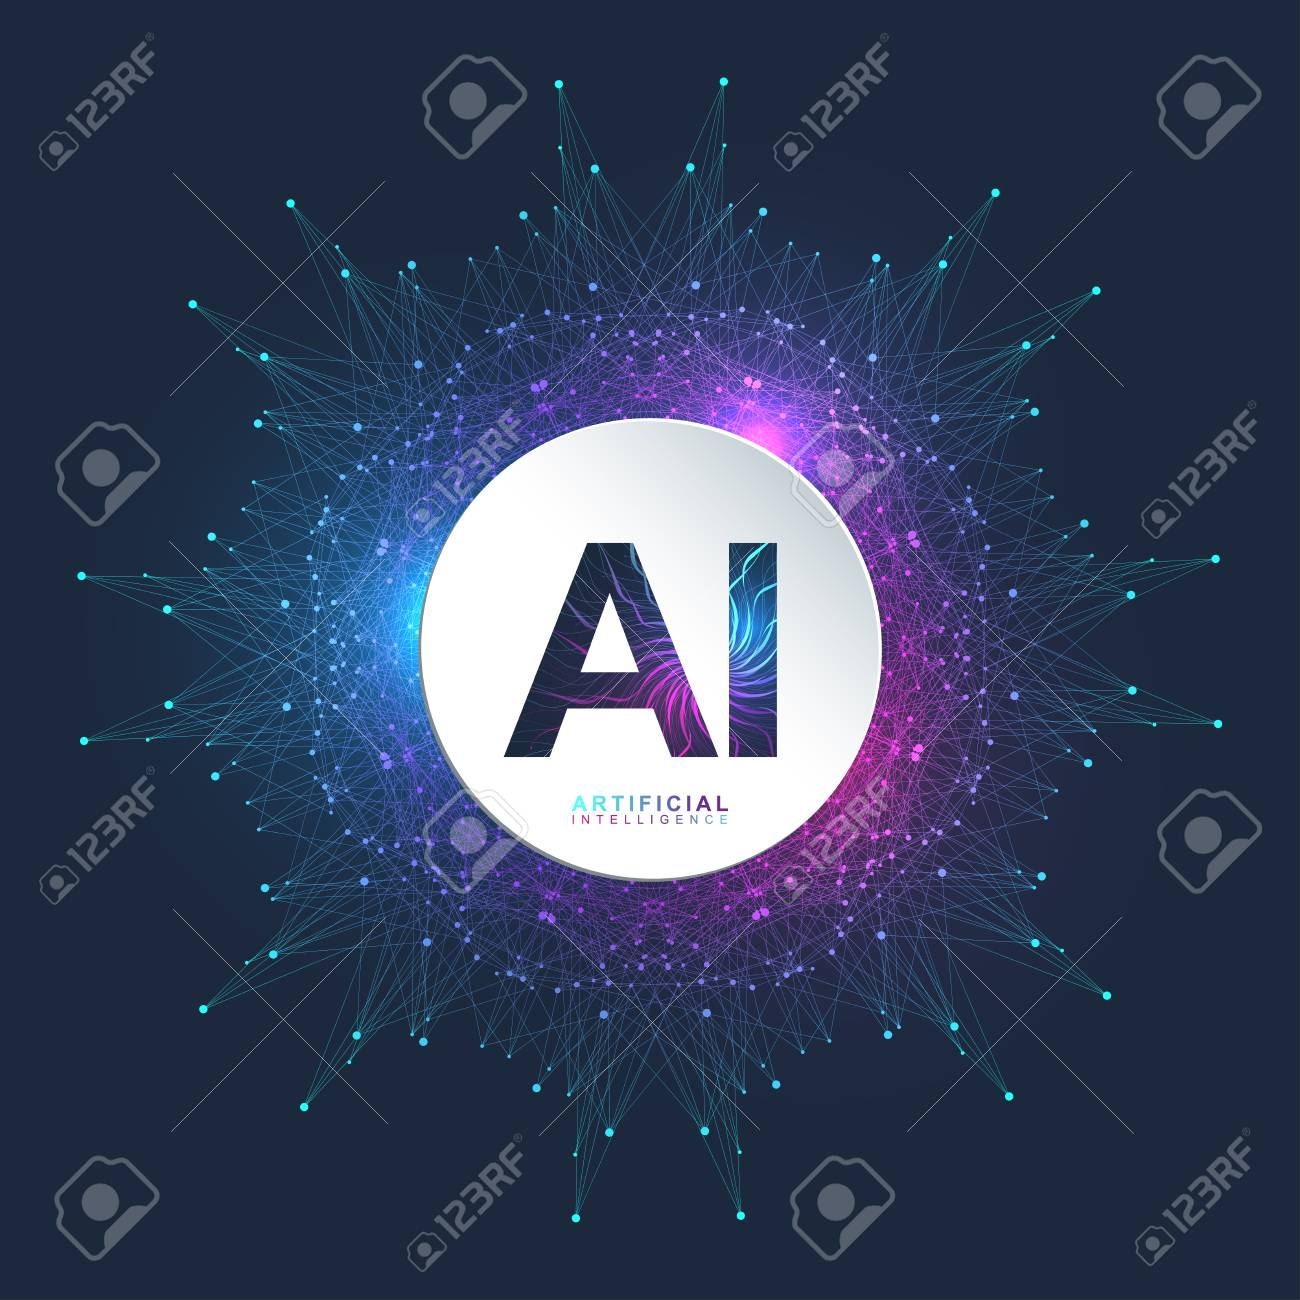 Artificial Intelligence Logo. Artificial Intelligence and Machine Learning Concept. Vector symbol AI. Neural networks and another modern technologies concepts. Technology sci-fi concept. - 97514614